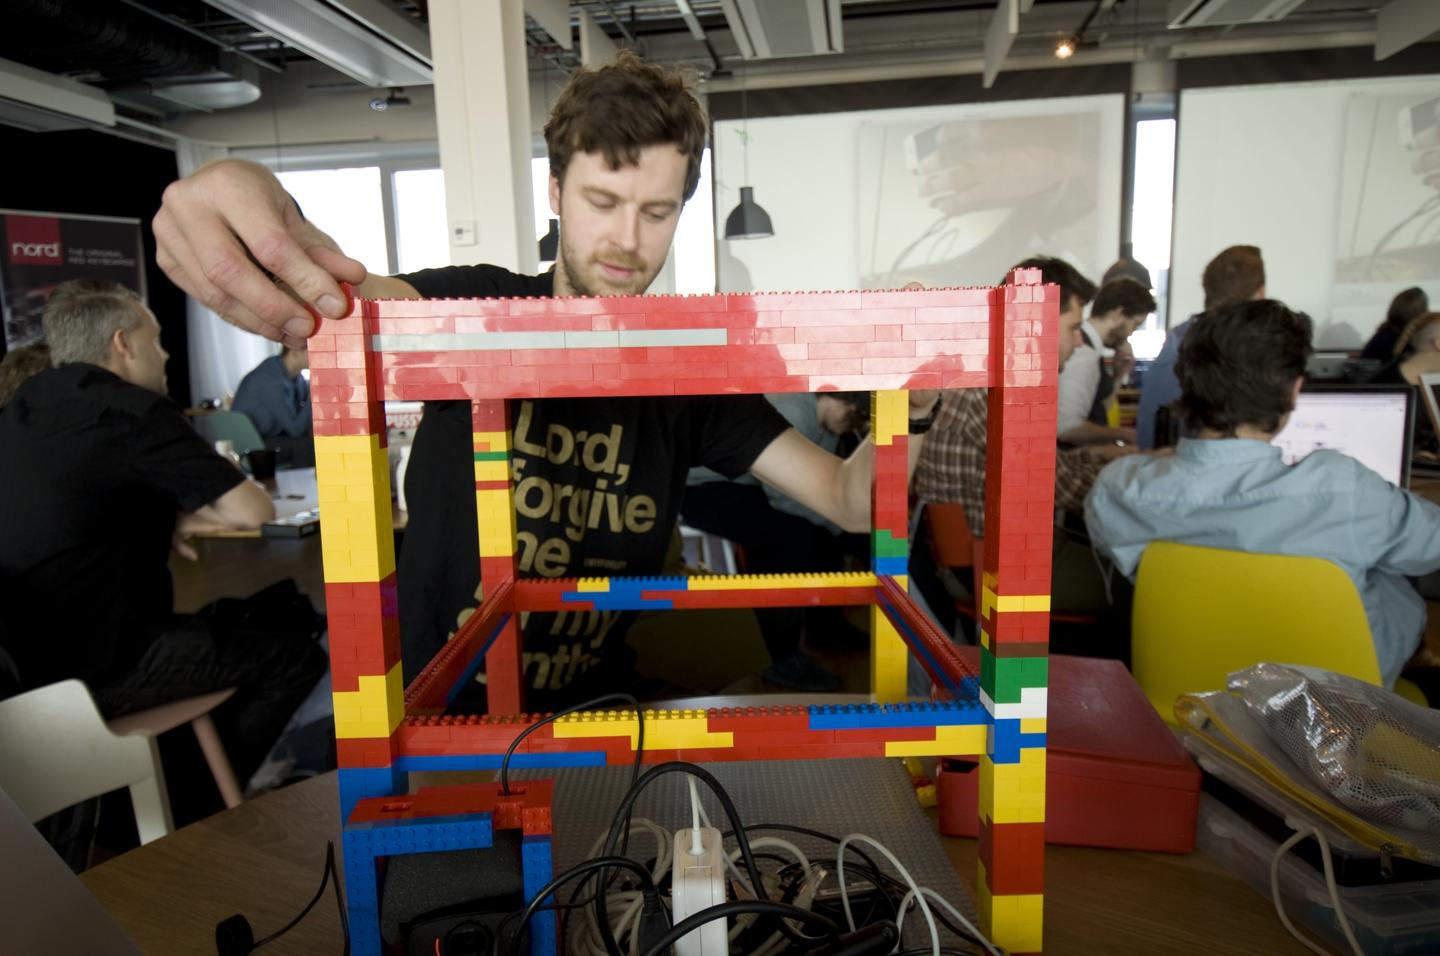 The upper surface measures 54 x 54 Lego brick studs, and the structure rises some 50 cm (20 in) from the ground or desk on which it sits